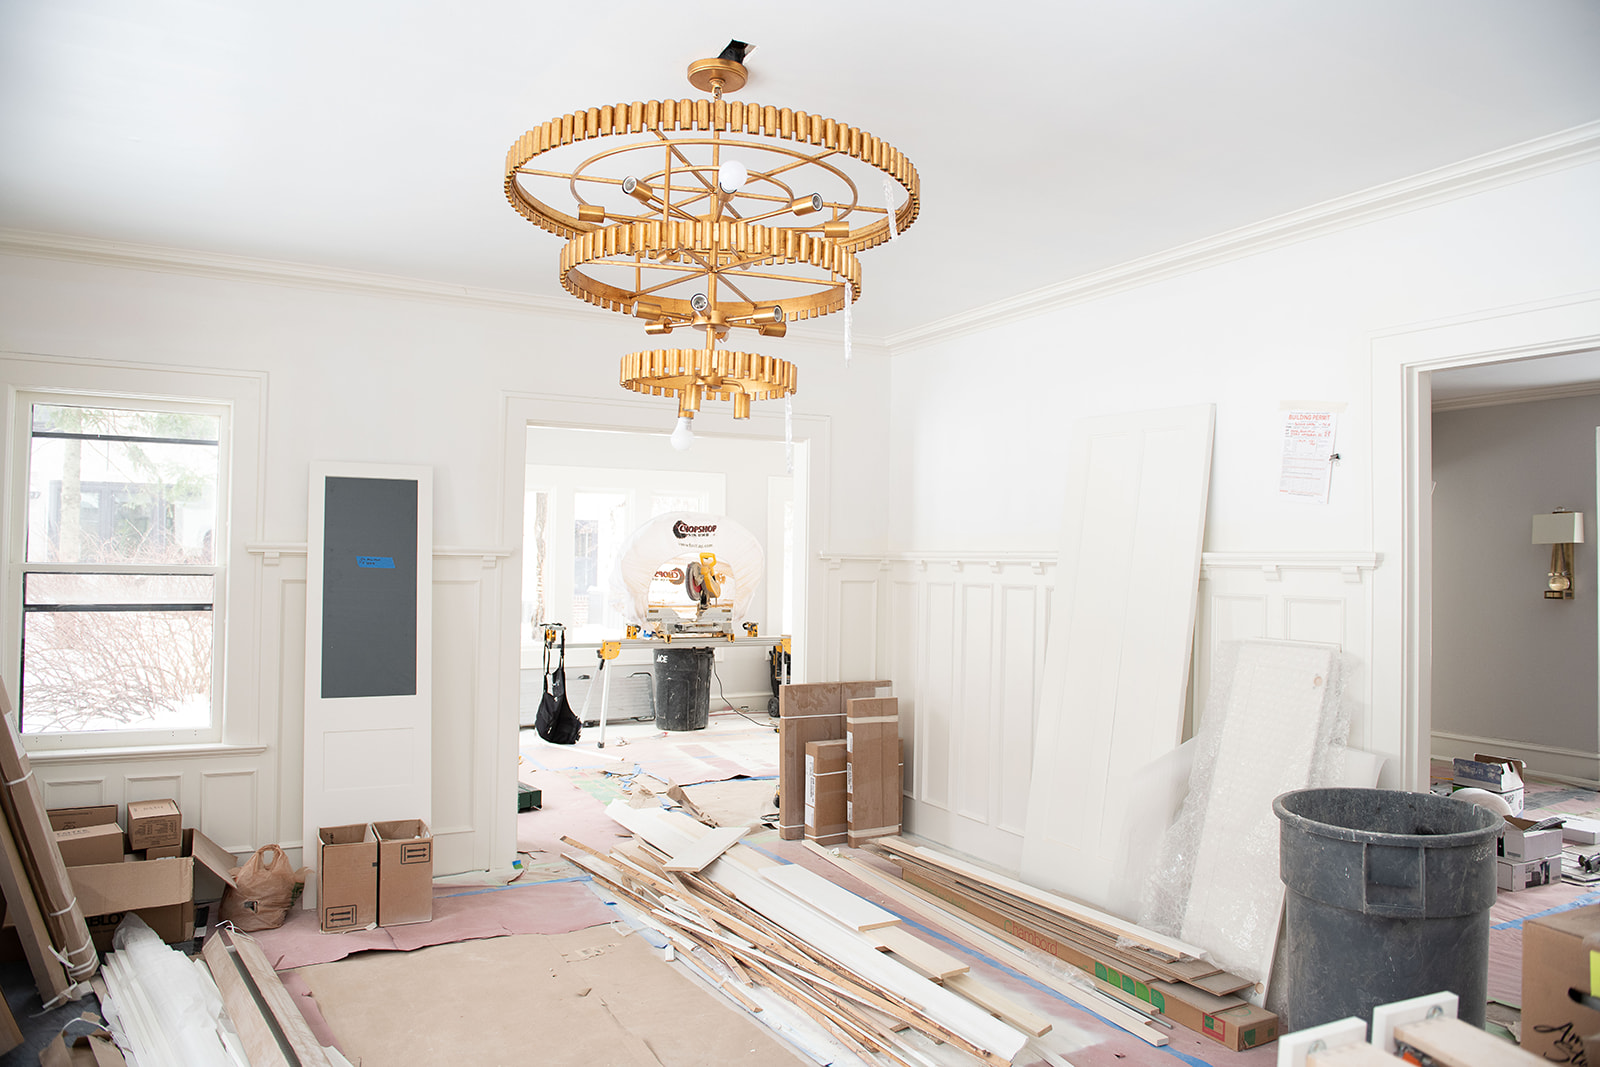 Things are taking shape in each room of the house now that the demolition phase is over! This dining room is already gorgeous and things are just getting started.